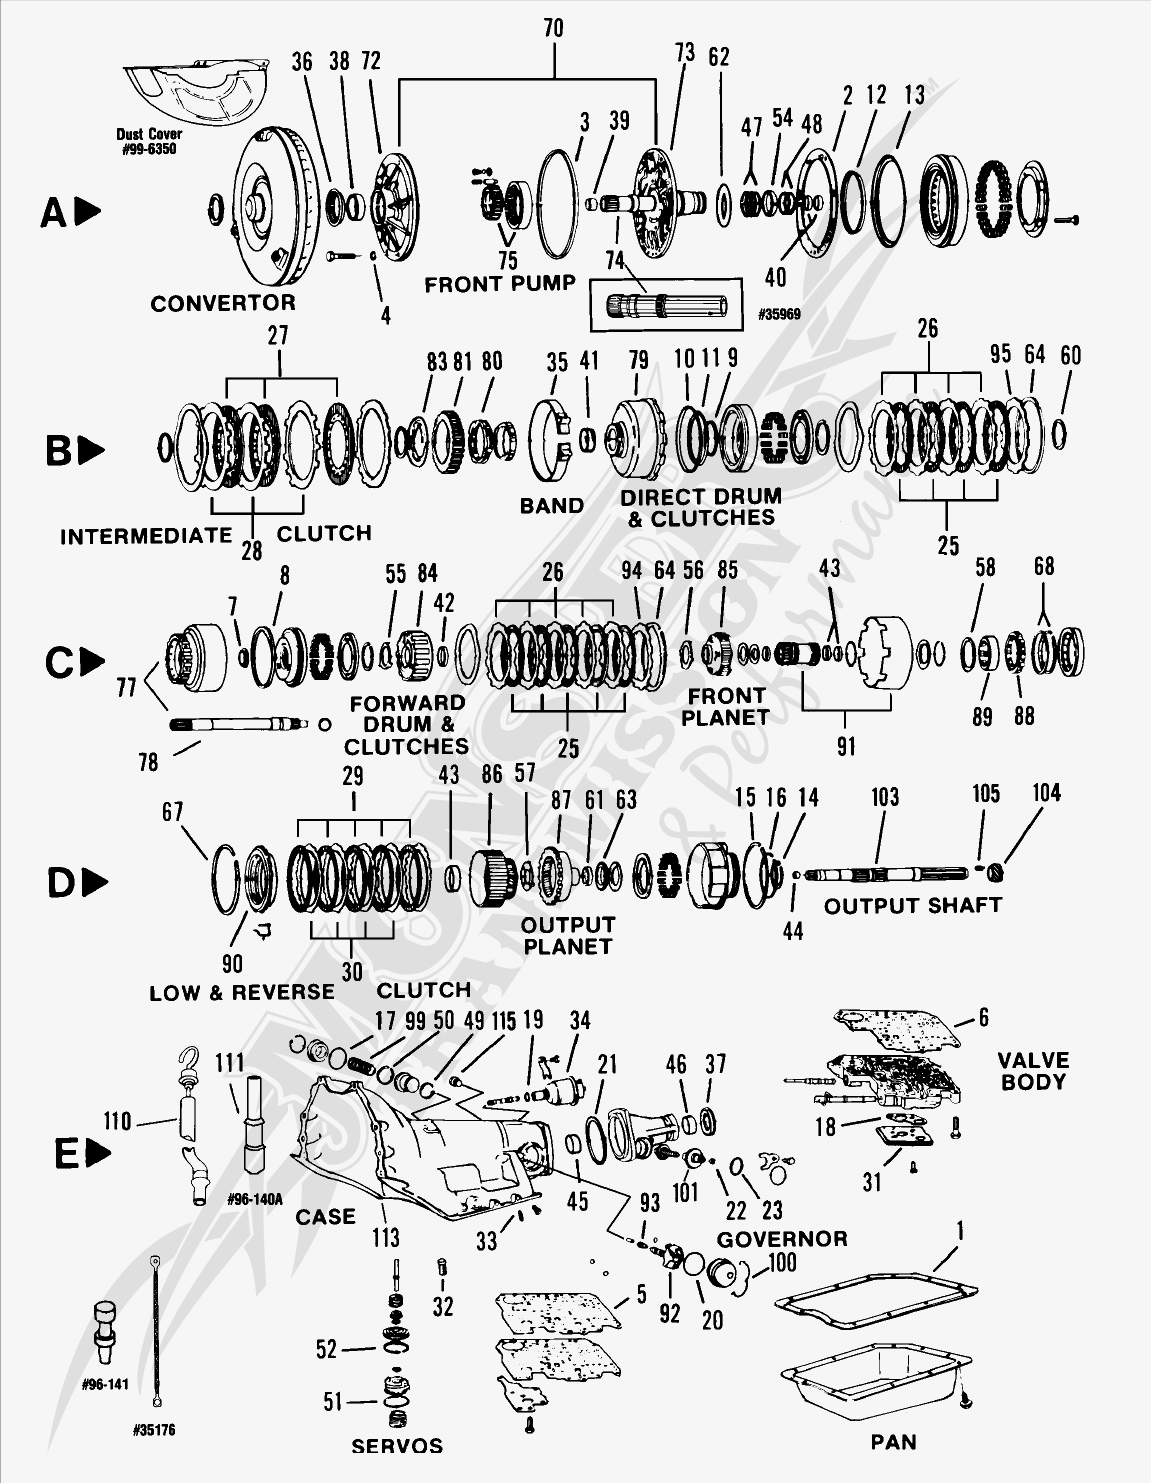 Turbo 350 Wiring Diagram Free For You Chevy Engine Schematic Transmission 37 Ramjet